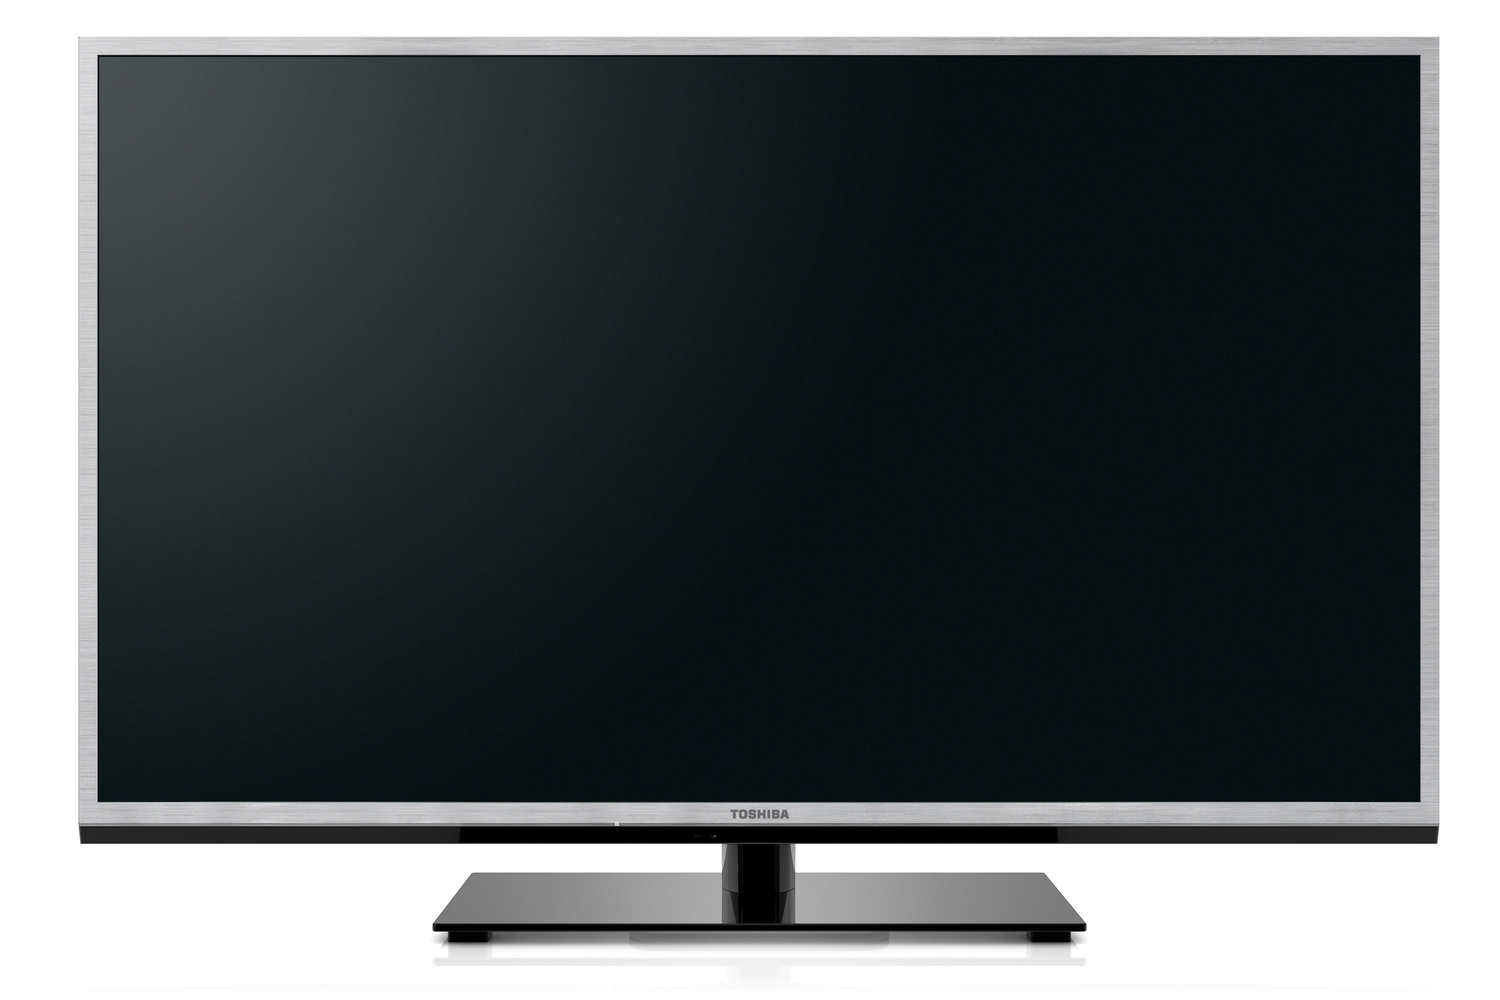 Toshiba 46tl900a Review Toshiba S Led Tvs Appeal To